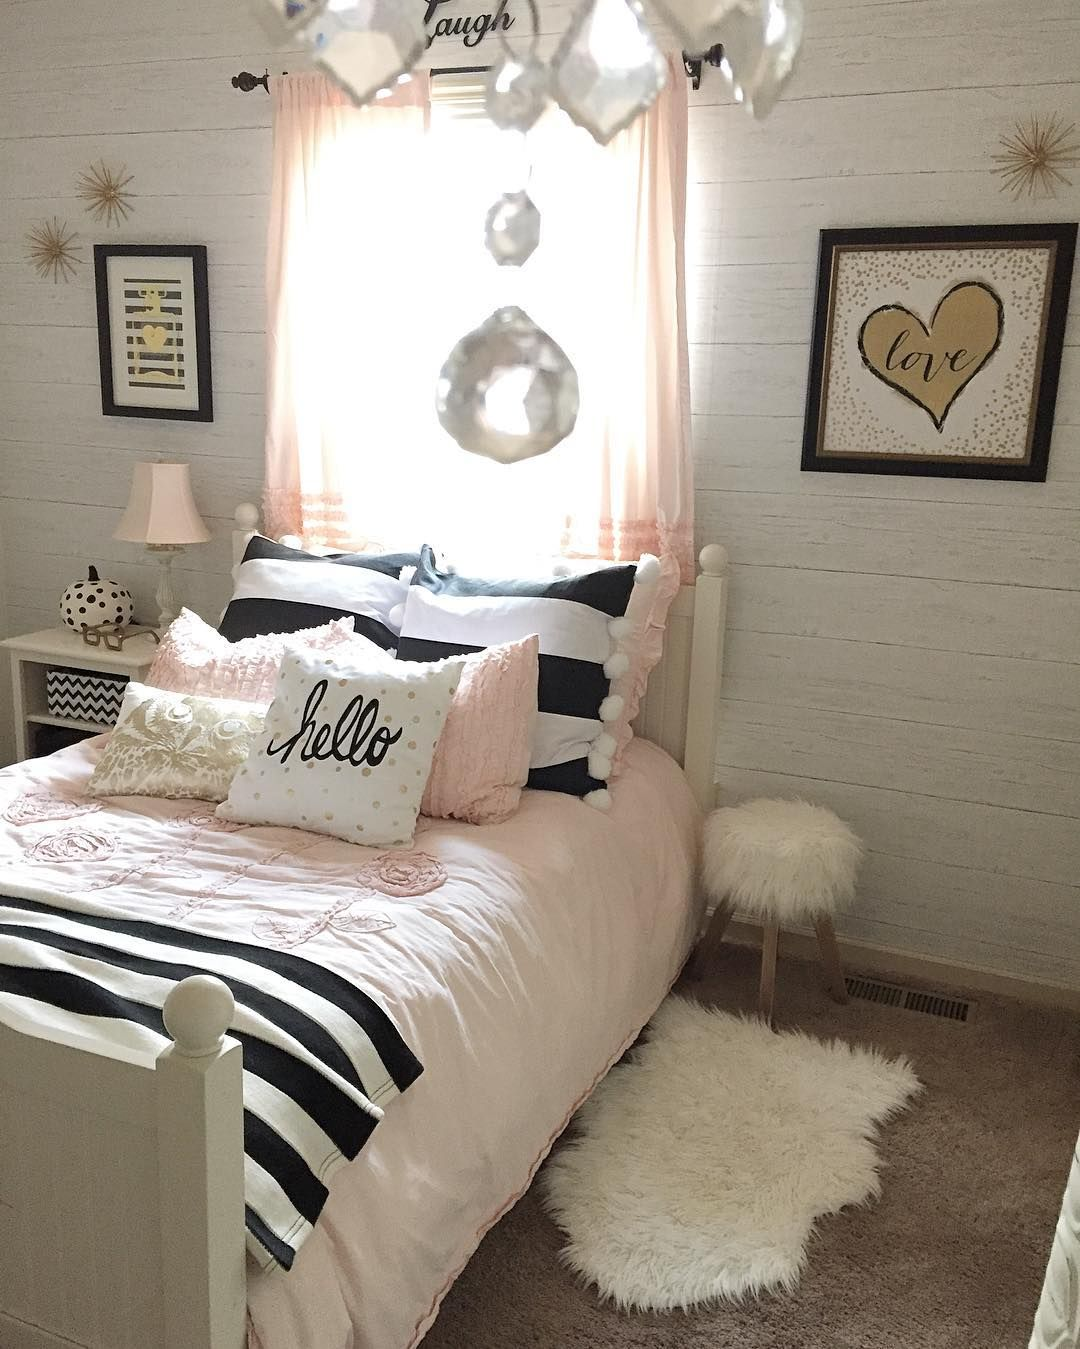 Cute Room Ideas For Small Rooms Part - 20: 12 Fun Girlu0027s Bedroom Decor Ideas - Cute Room Decorating for Girls Tags: a  girl room decoration, a baby girl room decor, girl room themes for tweens,  ...